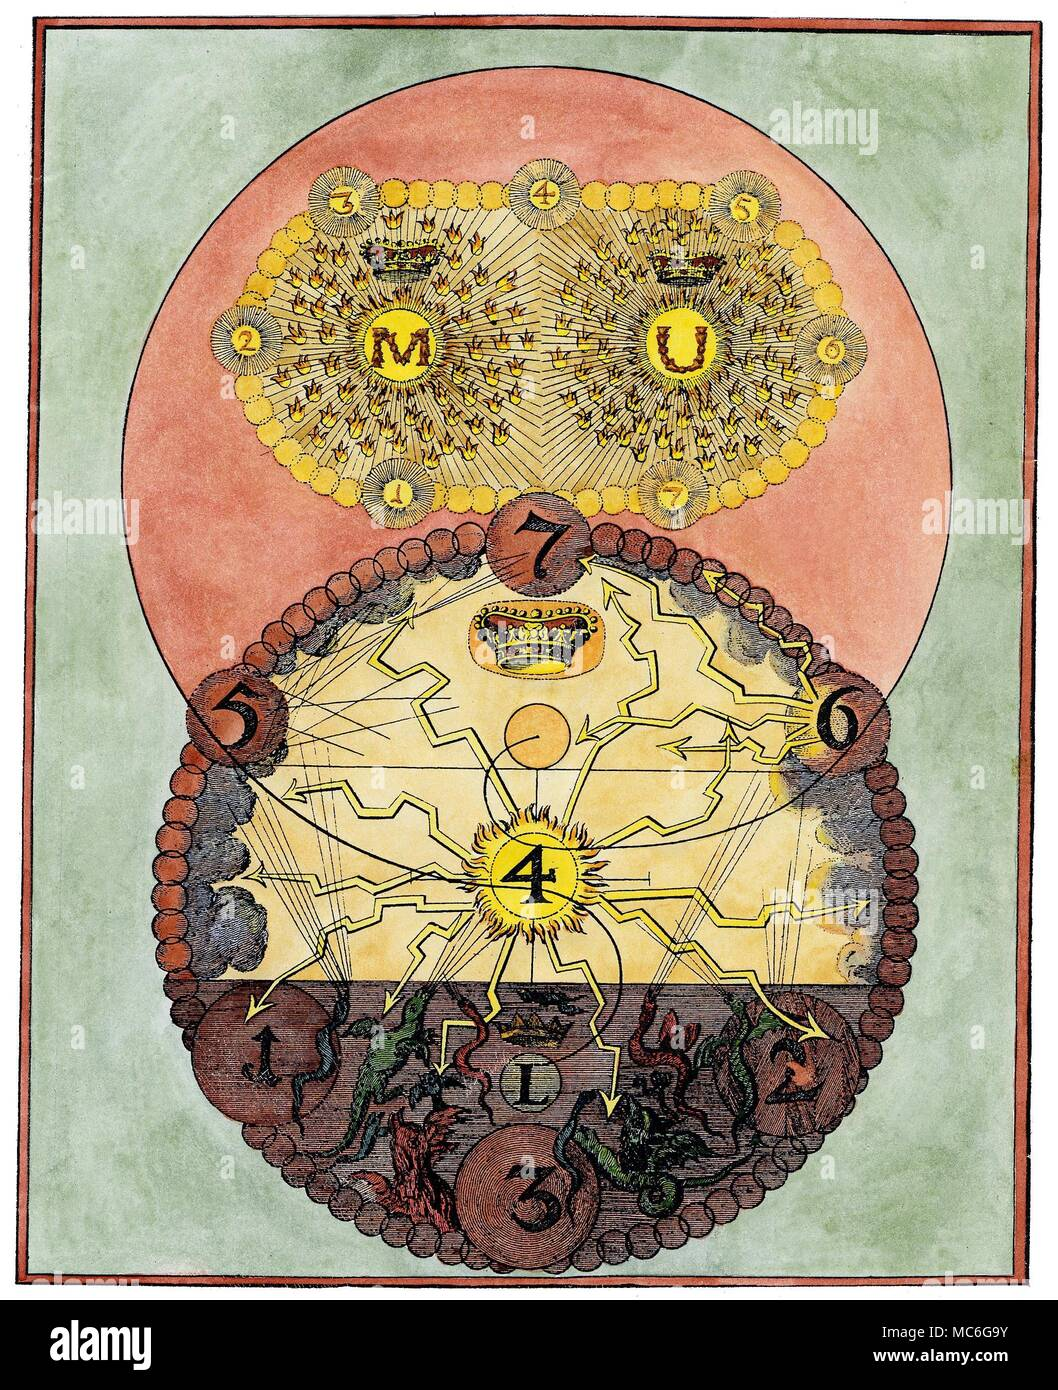 SYMBOLS - OCCULT ART - ROSICRUCIANS One of a series of